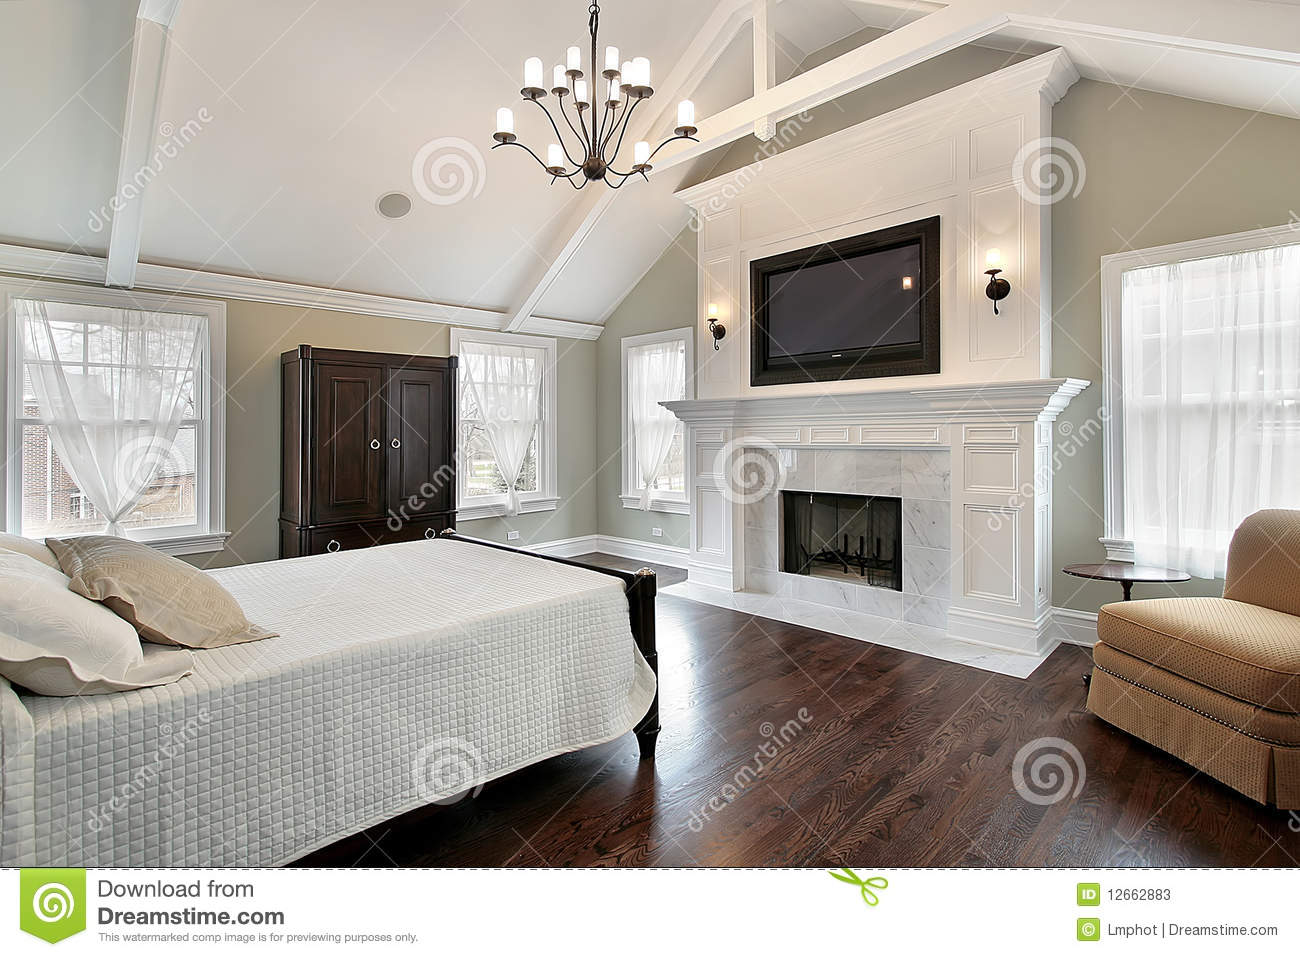 chambre coucher principale avec la chemin e de marbre photos stock image 12662883. Black Bedroom Furniture Sets. Home Design Ideas